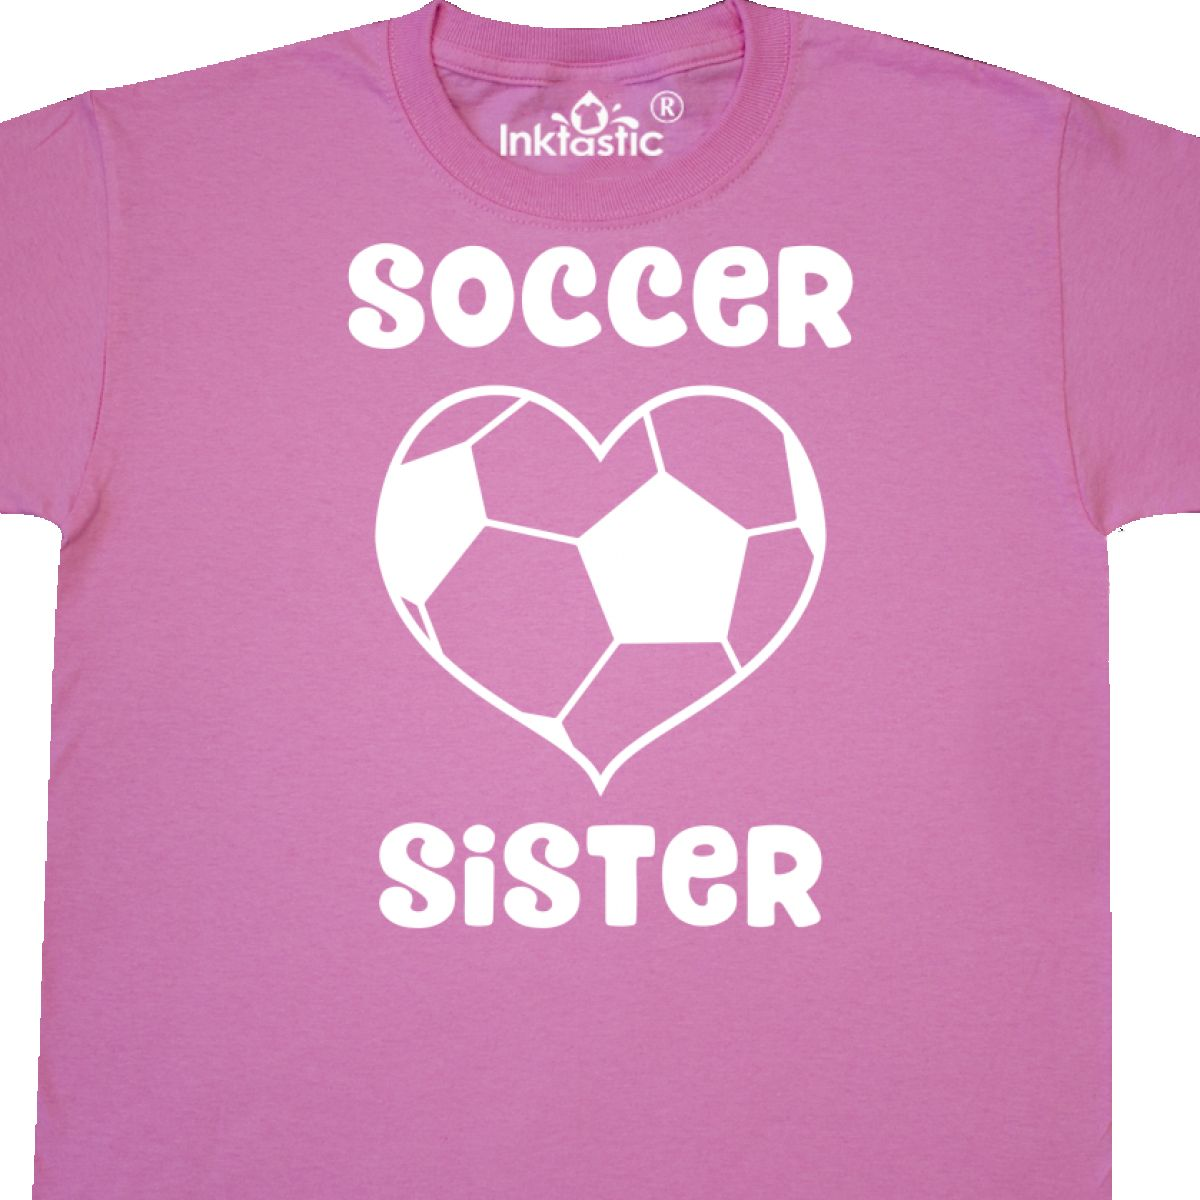 46d026737974a Details about Inktastic Heart Soccer Sister Youth T-Shirt Shaped Ball I  Love Funny Loud Proud